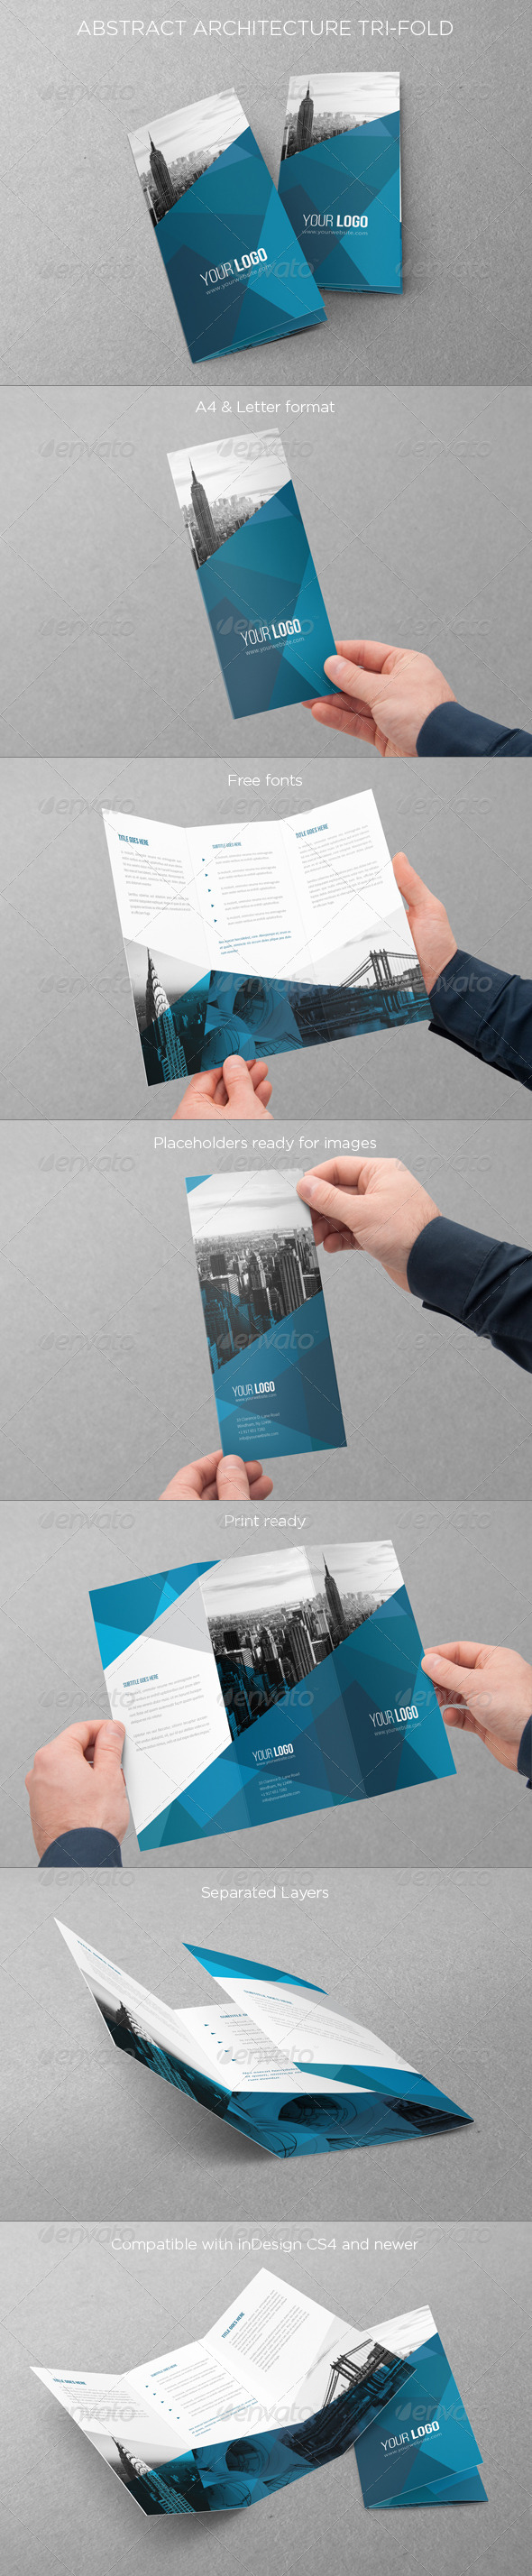 Abstract Architecture Trifold - Brochures Print Templates